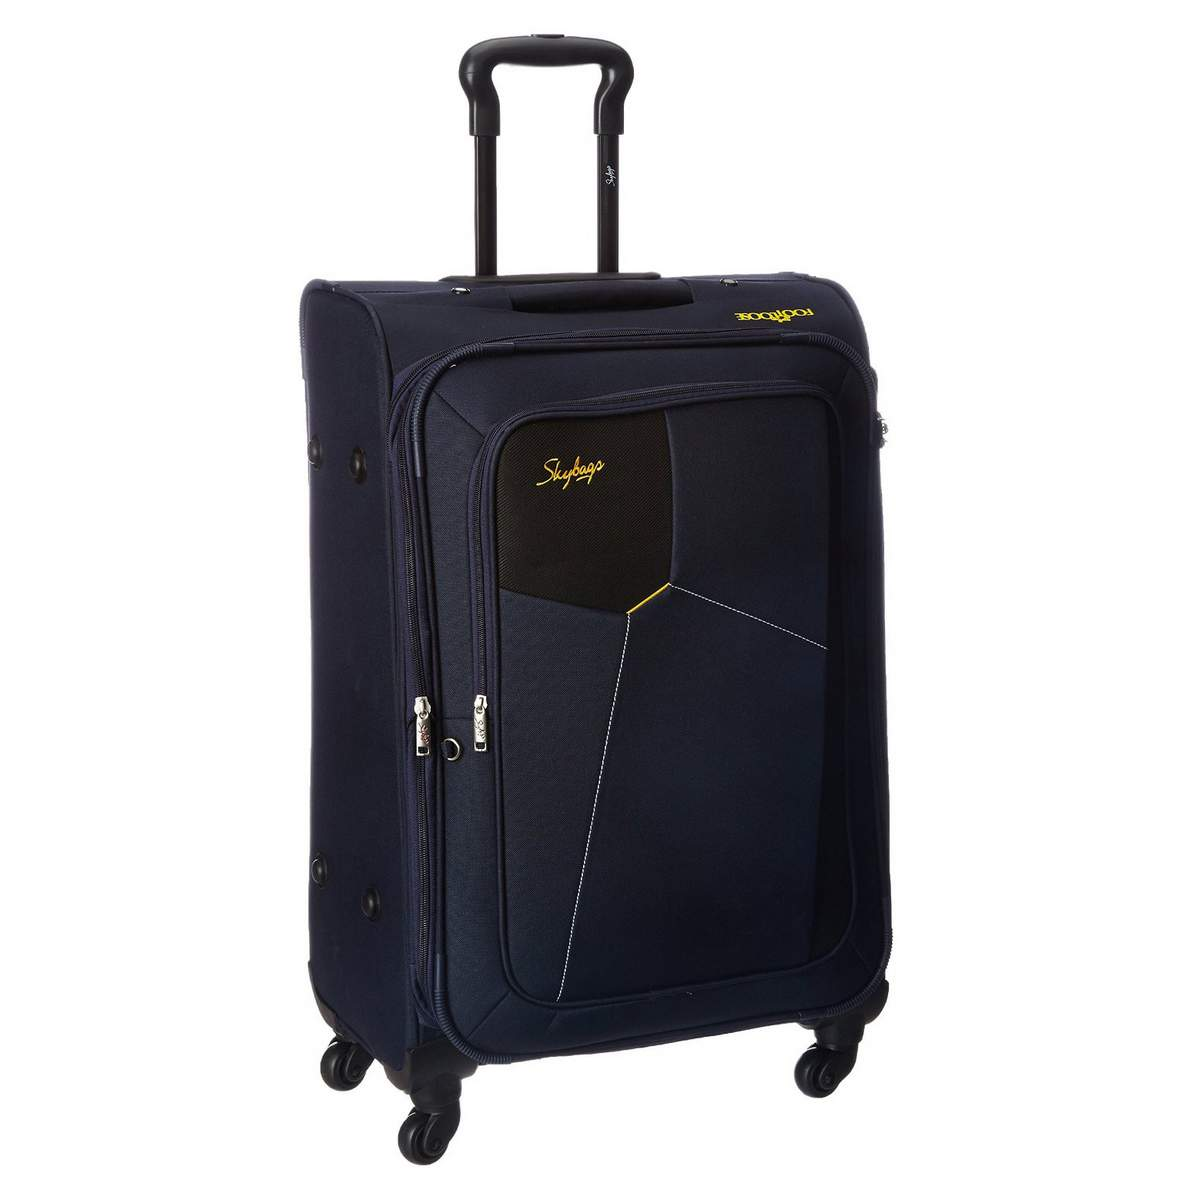 Skybags Rubik 56cm Soft Luggage Bag with Laptop Compartment - Sunrise  Trading Co (Bangalore) d47555eafd0fa